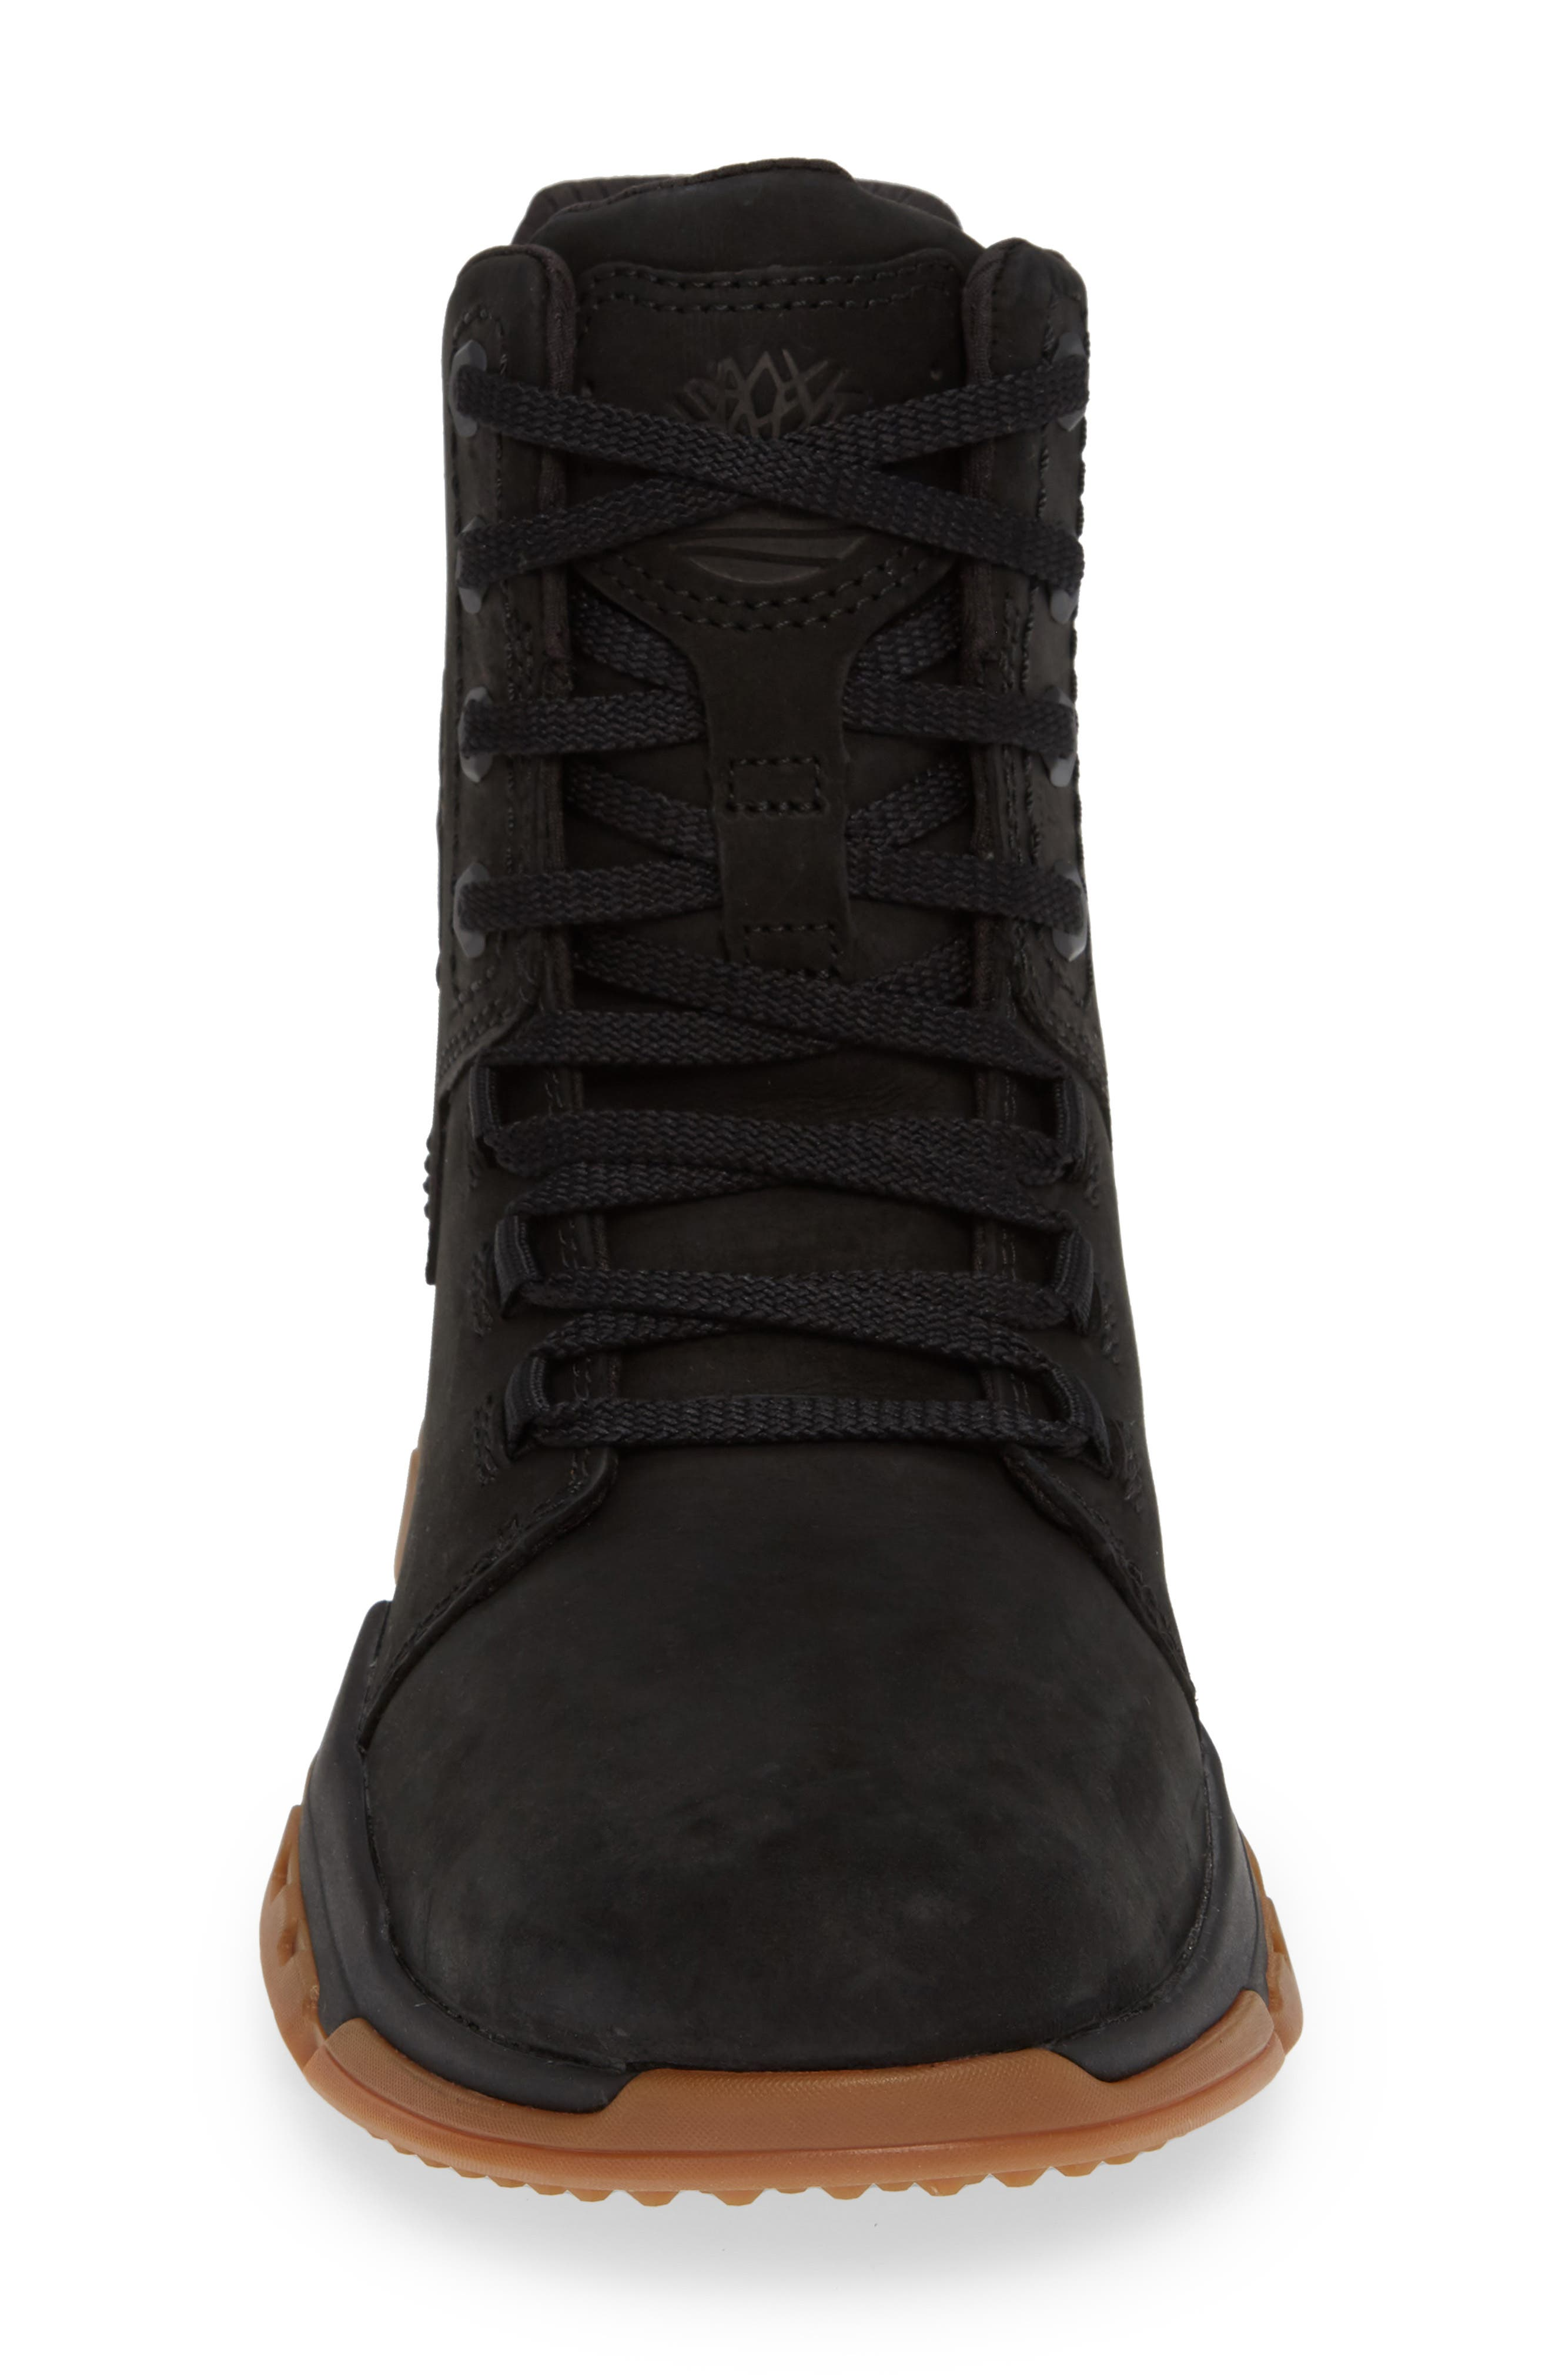 TIMBERLAND, City Force Reveal Plain Toe Boot, Alternate thumbnail 4, color, BLACK LEATHER/ NEOPRENE